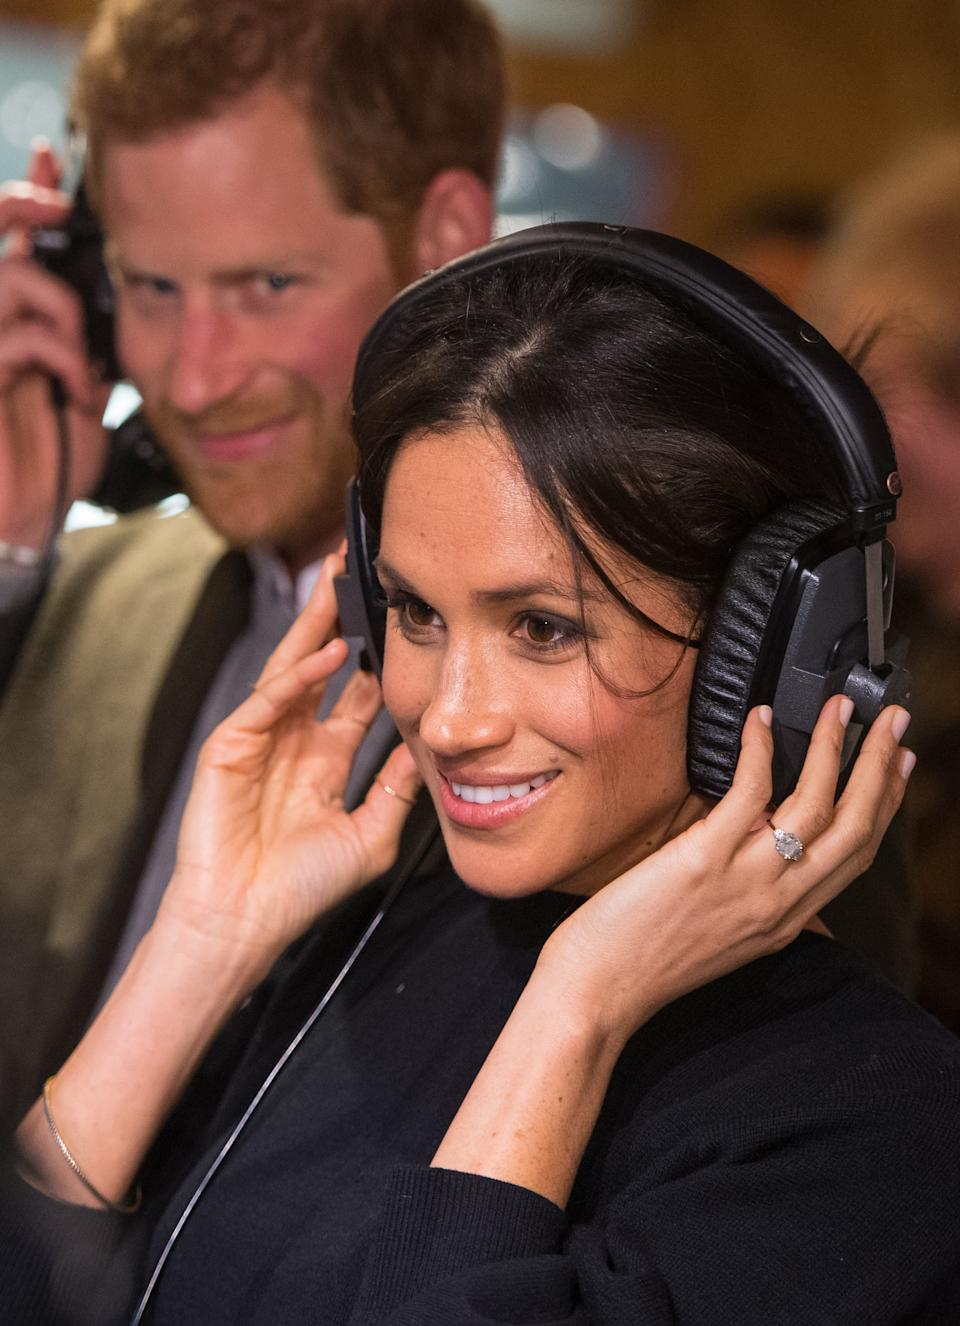 Britain's Prince Harry and his fiancée US actress Meghan Markle listen to a broadcast through headphones during a visit to Reprezent 107.3FM community radio station in Brixton, south west London on January 9, 2018.   / AFP PHOTO / POOL / Dominic Lipinski        (Photo credit should read DOMINIC LIPINSKI/AFP via Getty Images)